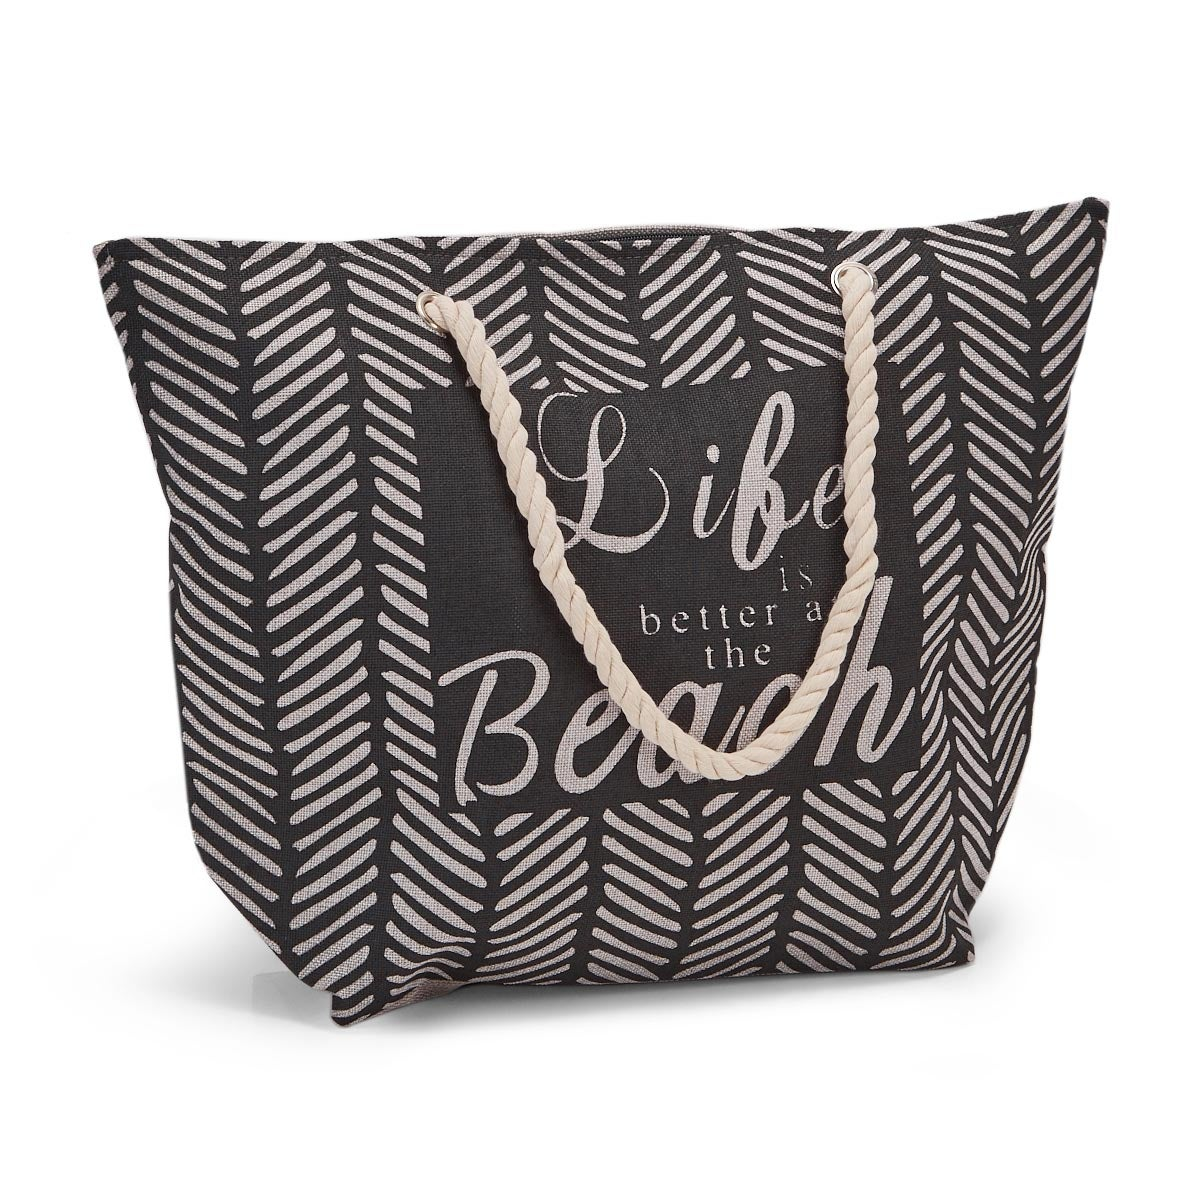 Lds blk/wht large quote tote hand bag